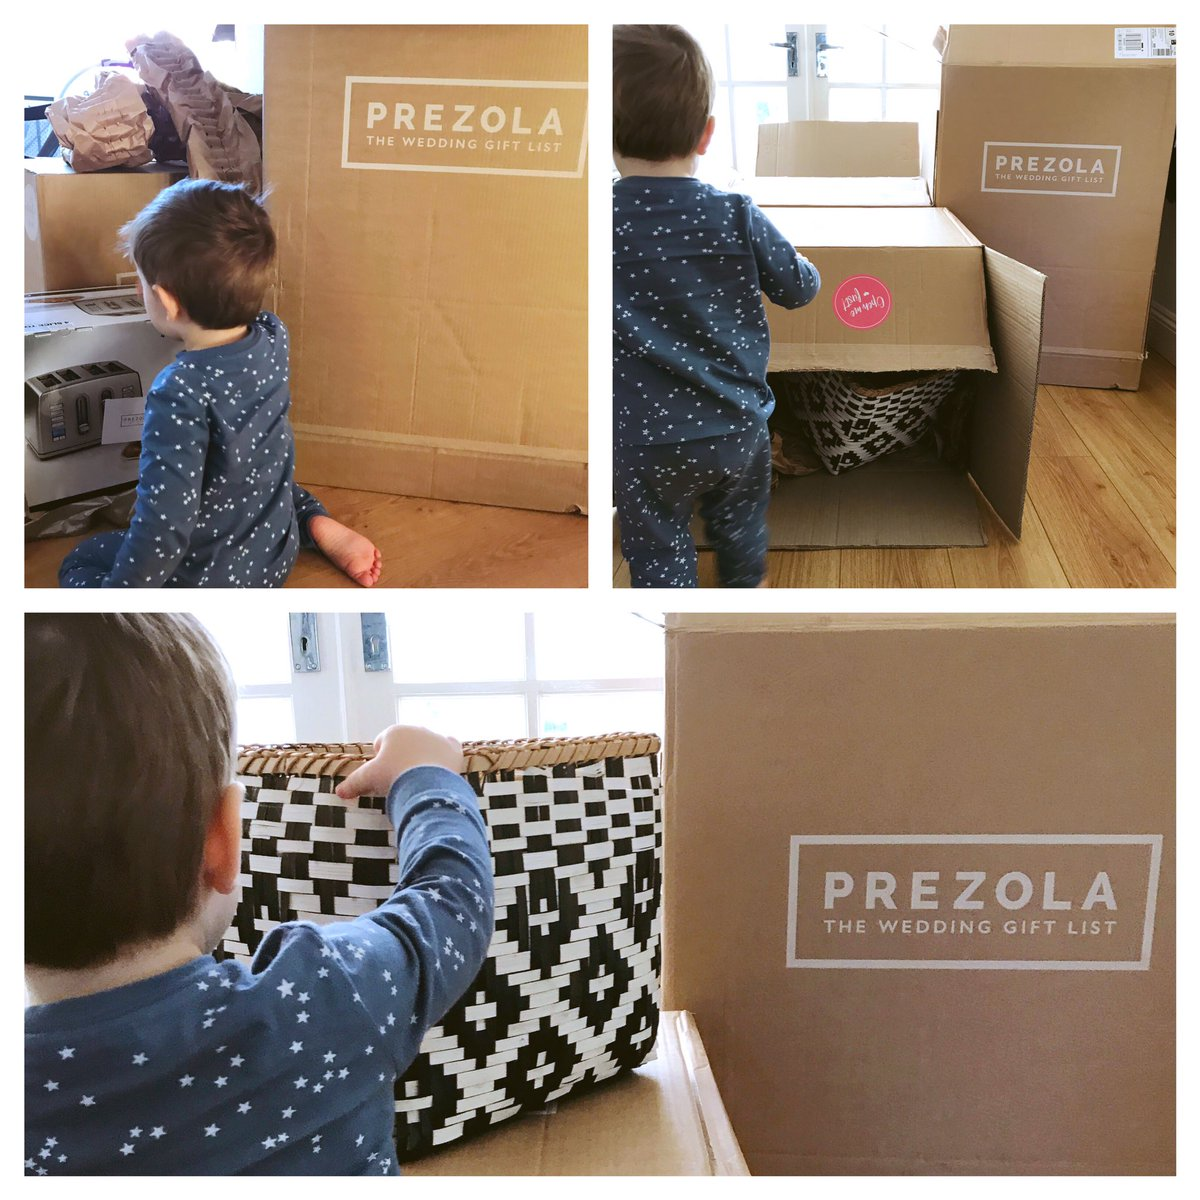 Prezola Twitter Enjoying Opening All Our Gorgeous Wedding Gifts From Lovely Family Friends We